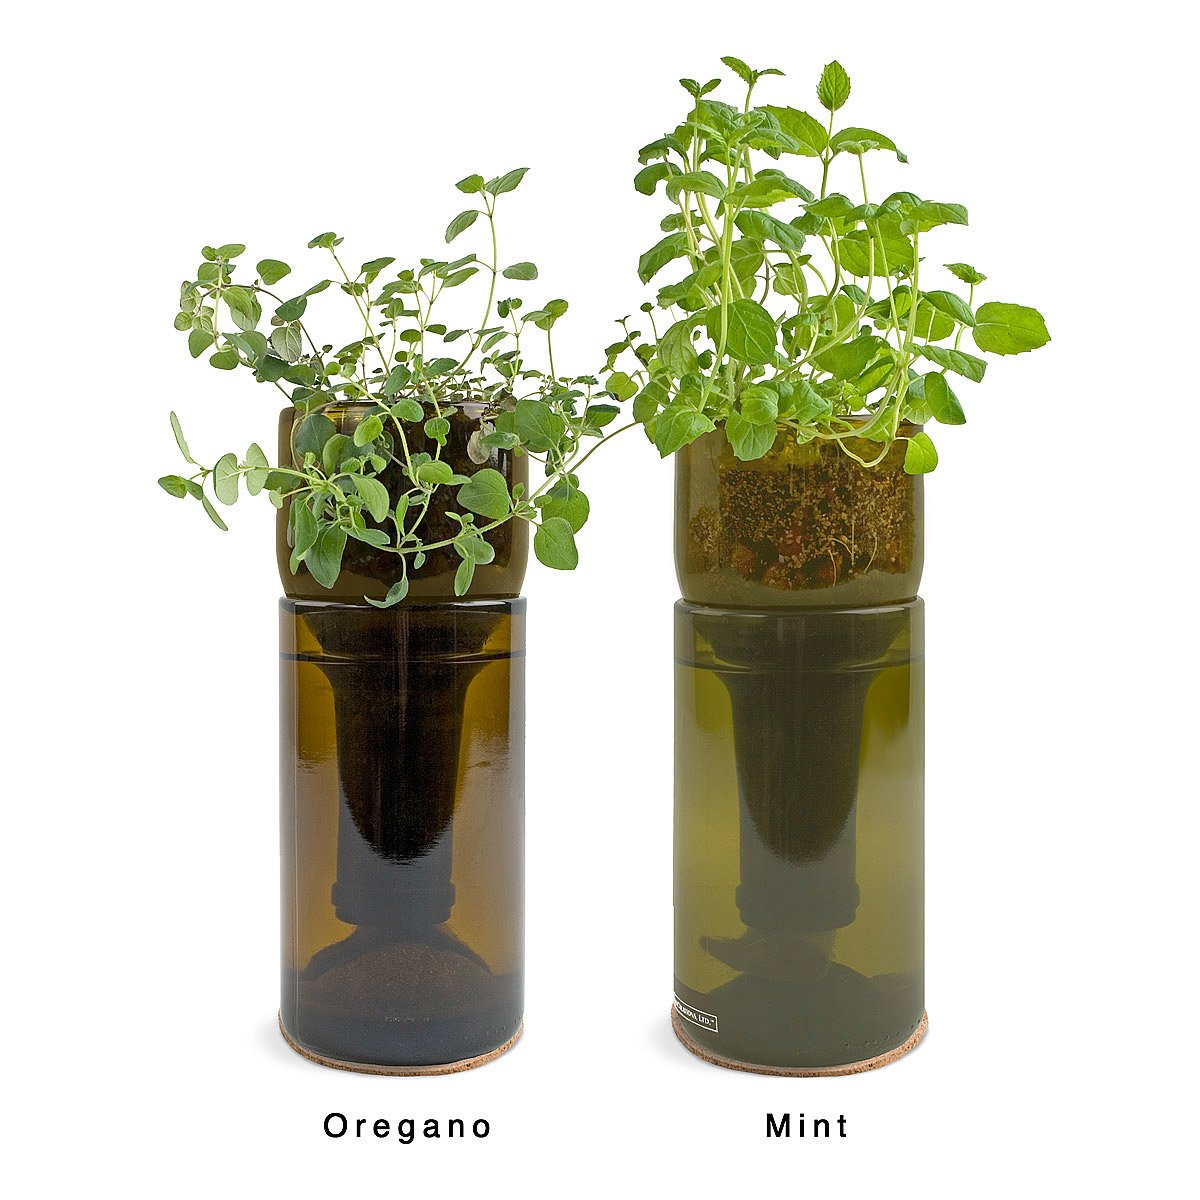 Indoor Herb Planter Interesting Growbottle  Indoor Herb Garden Kit Wine Bottle Planter Inspiration Design